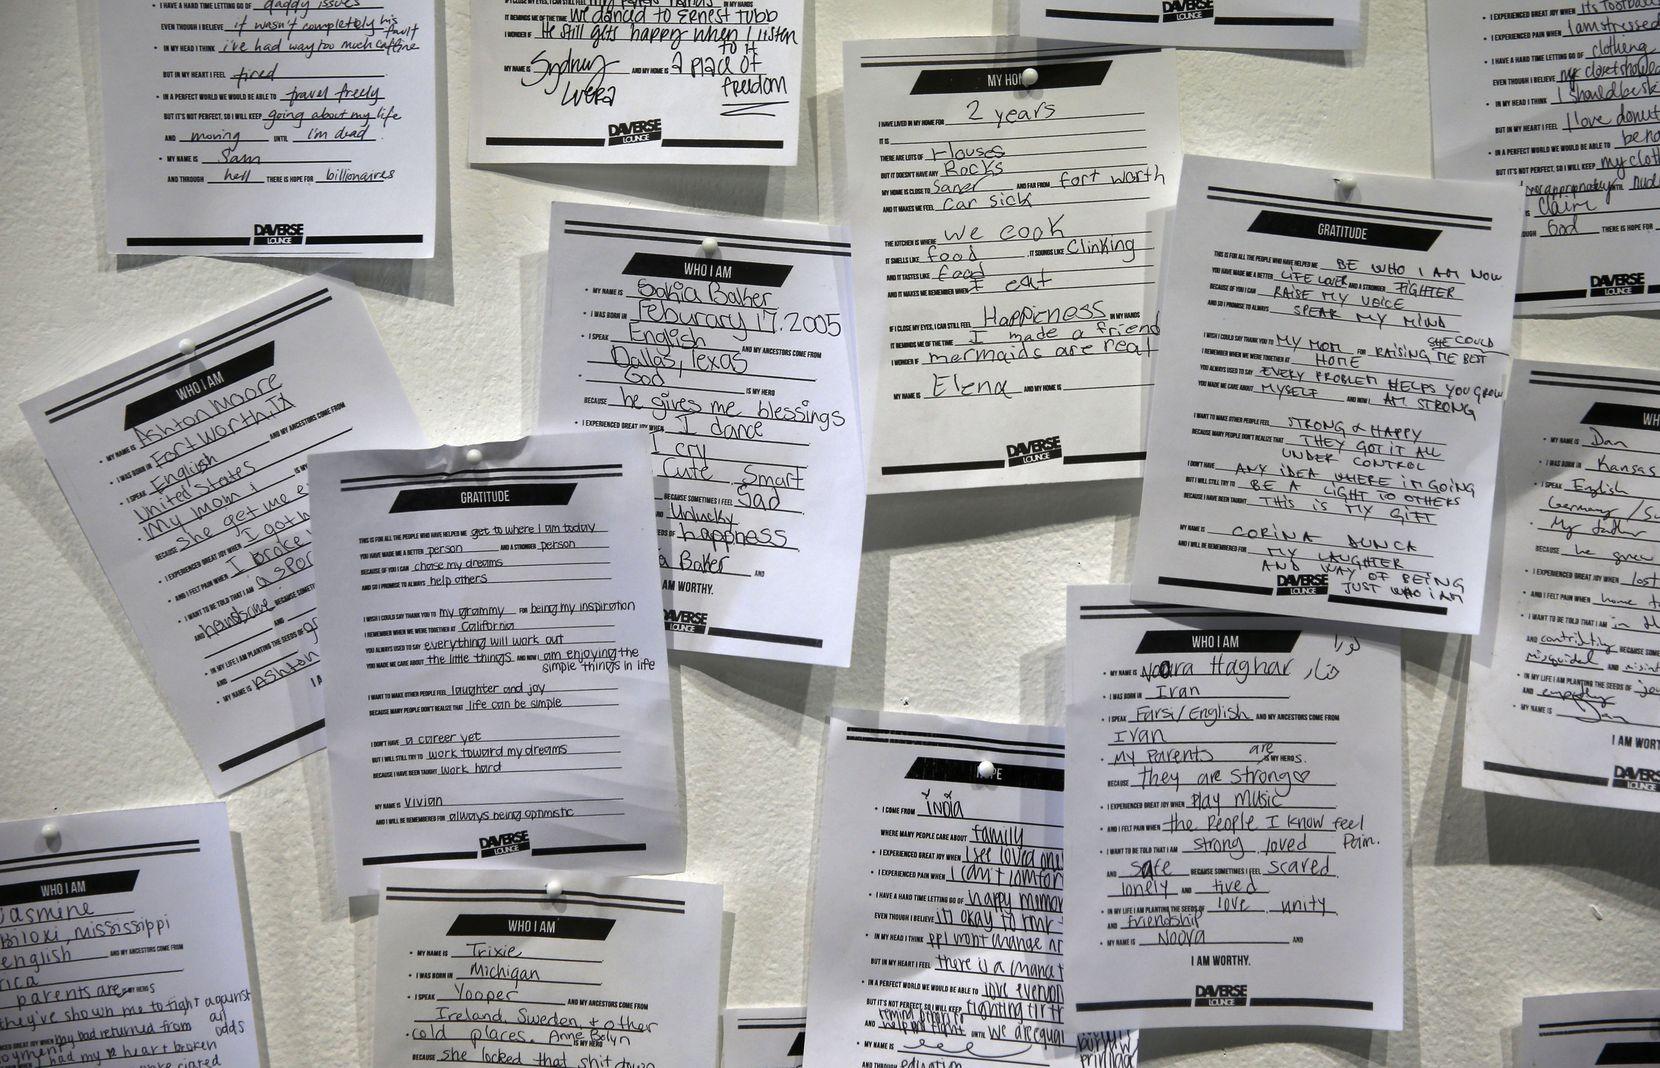 Participants in DaVerse Lounge's performances fill out at response templates, which are pinned to a wall in the Life in Deep Ellum building in Dallas as part of an exhibit of the project's work.